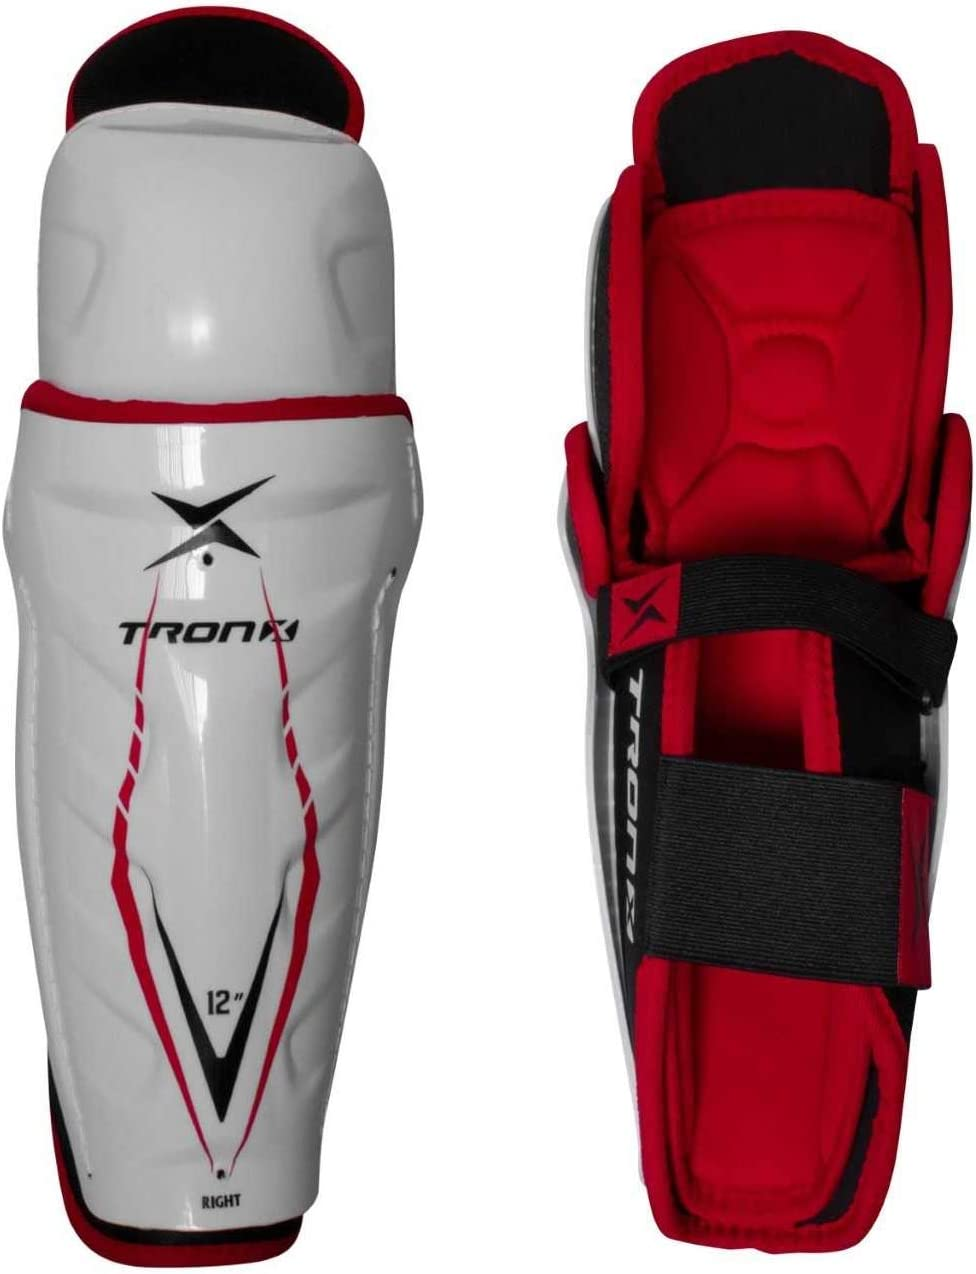 TronX Force Junior Ice Shin Hockey NEW ! Super beauty product restock quality top! before selling ☆ Guards